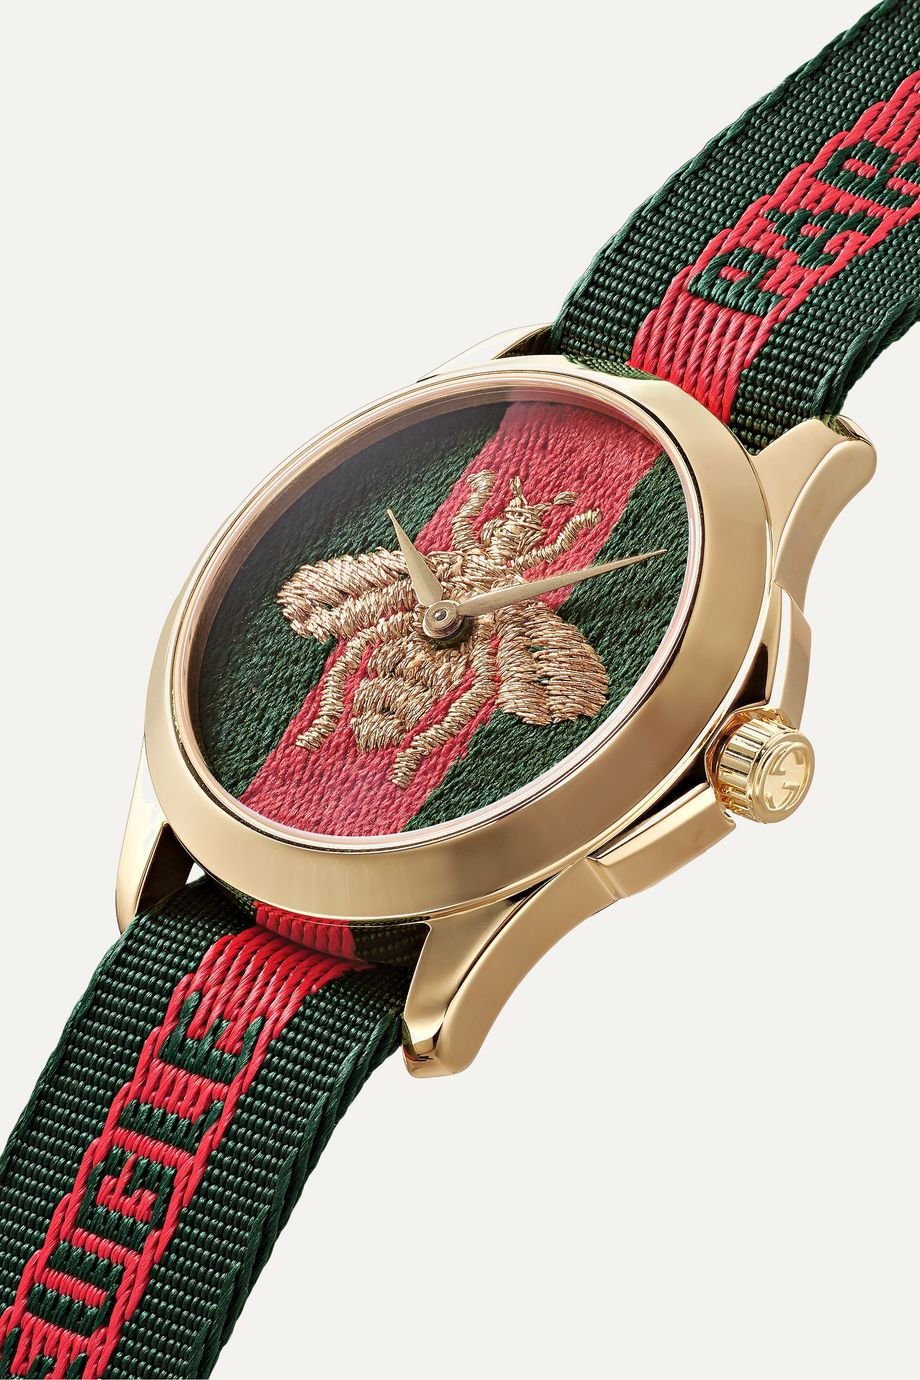 Gucci Le Marché des Merveilles 38mm PVD-plated and striped canvas watch